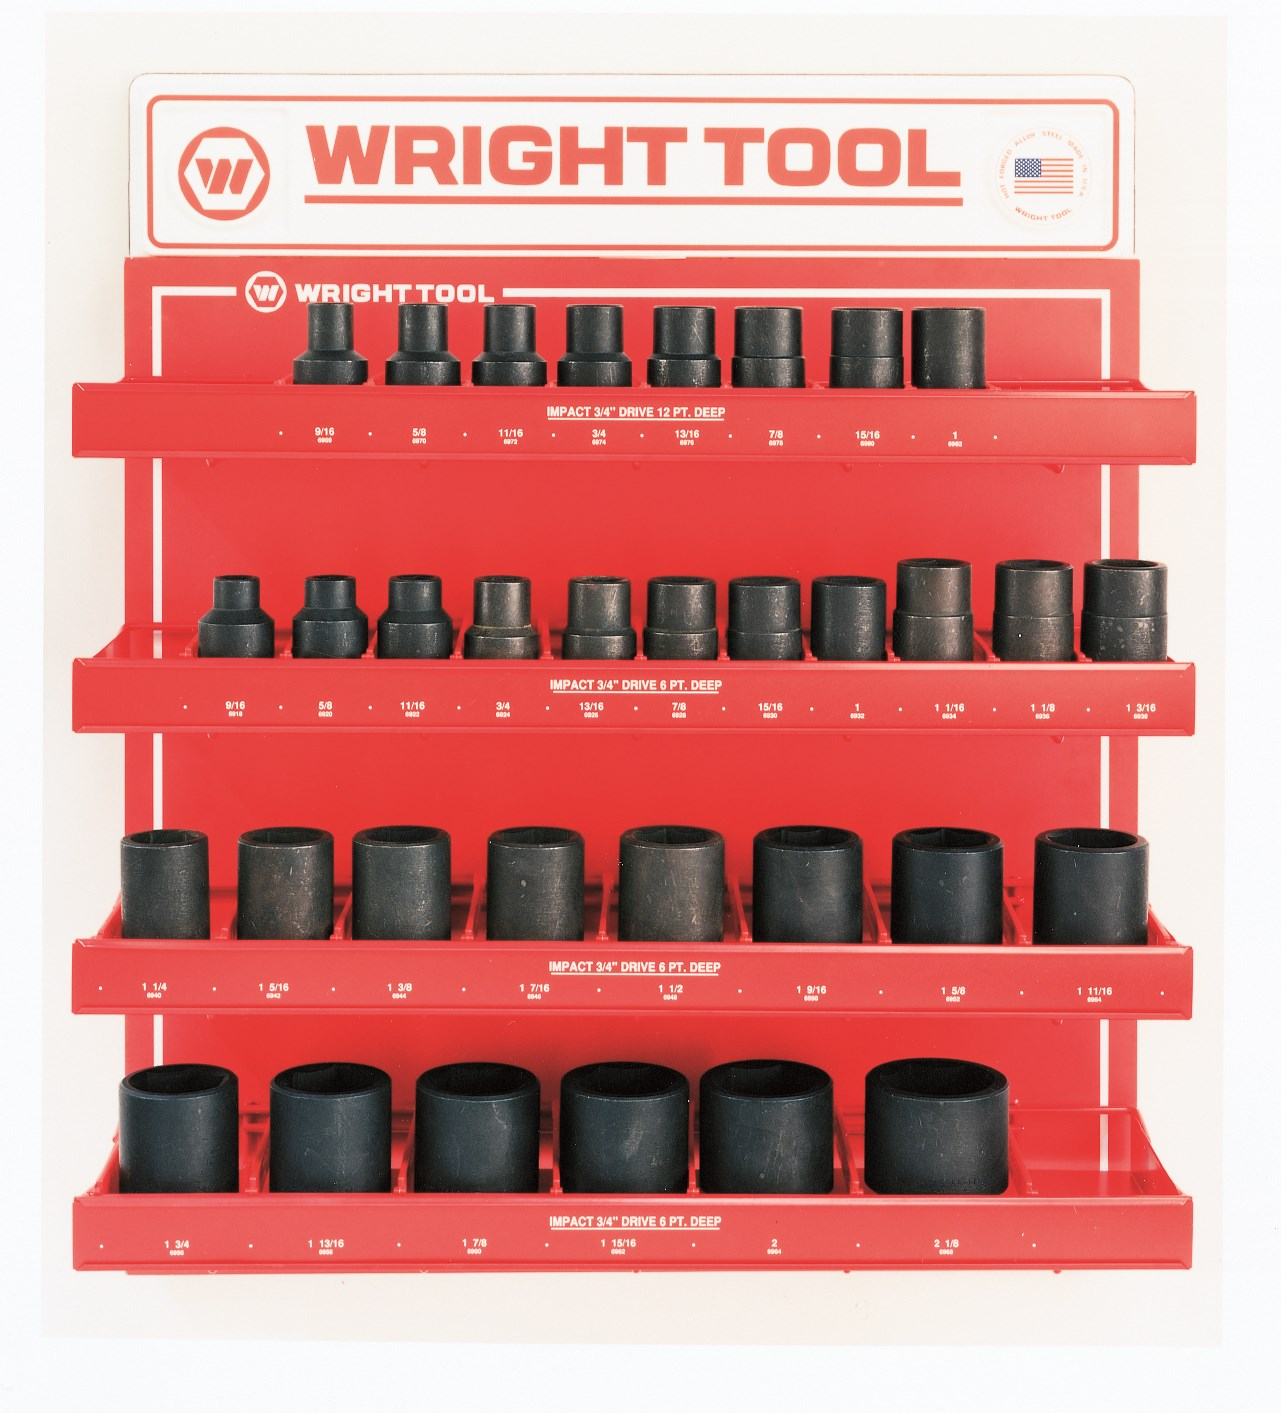 Wright Tool D986 33 Piece 3/4-inch Drive 6 & 12-Point Deep Impact Sockets